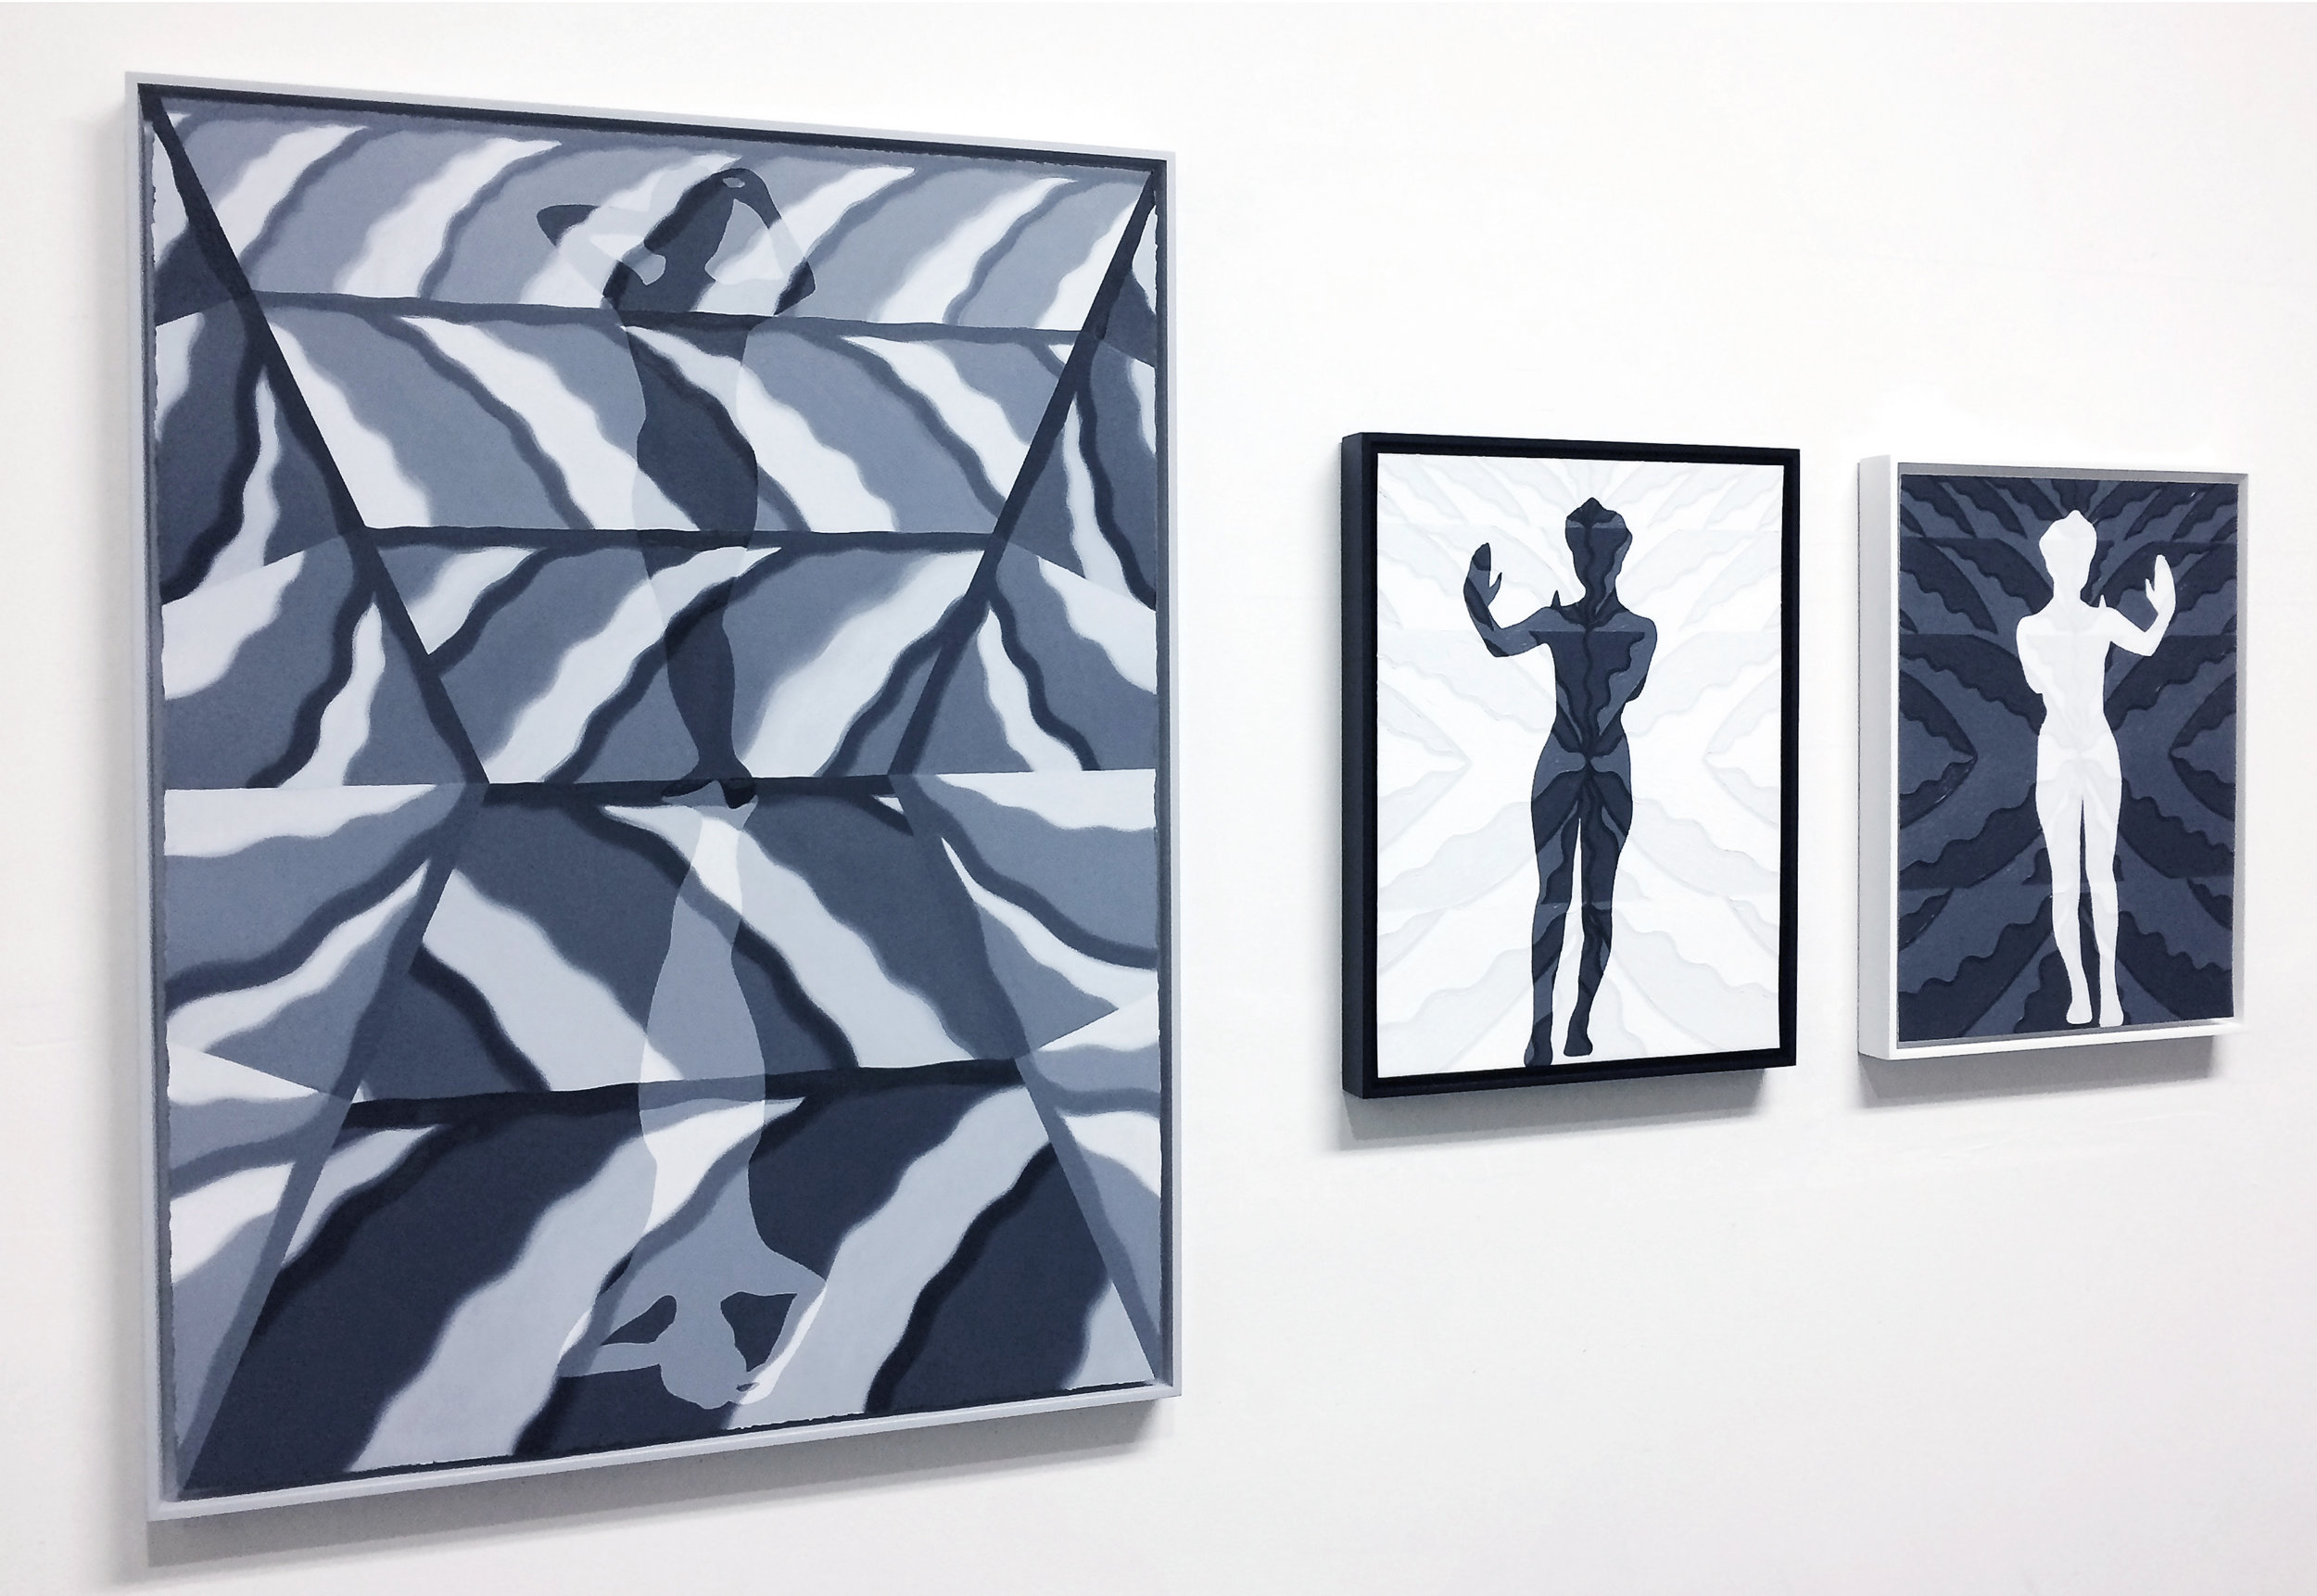 Installation view, from left:   Mirror Cloud, Standing Figure I, and Reflection I,Reflection II